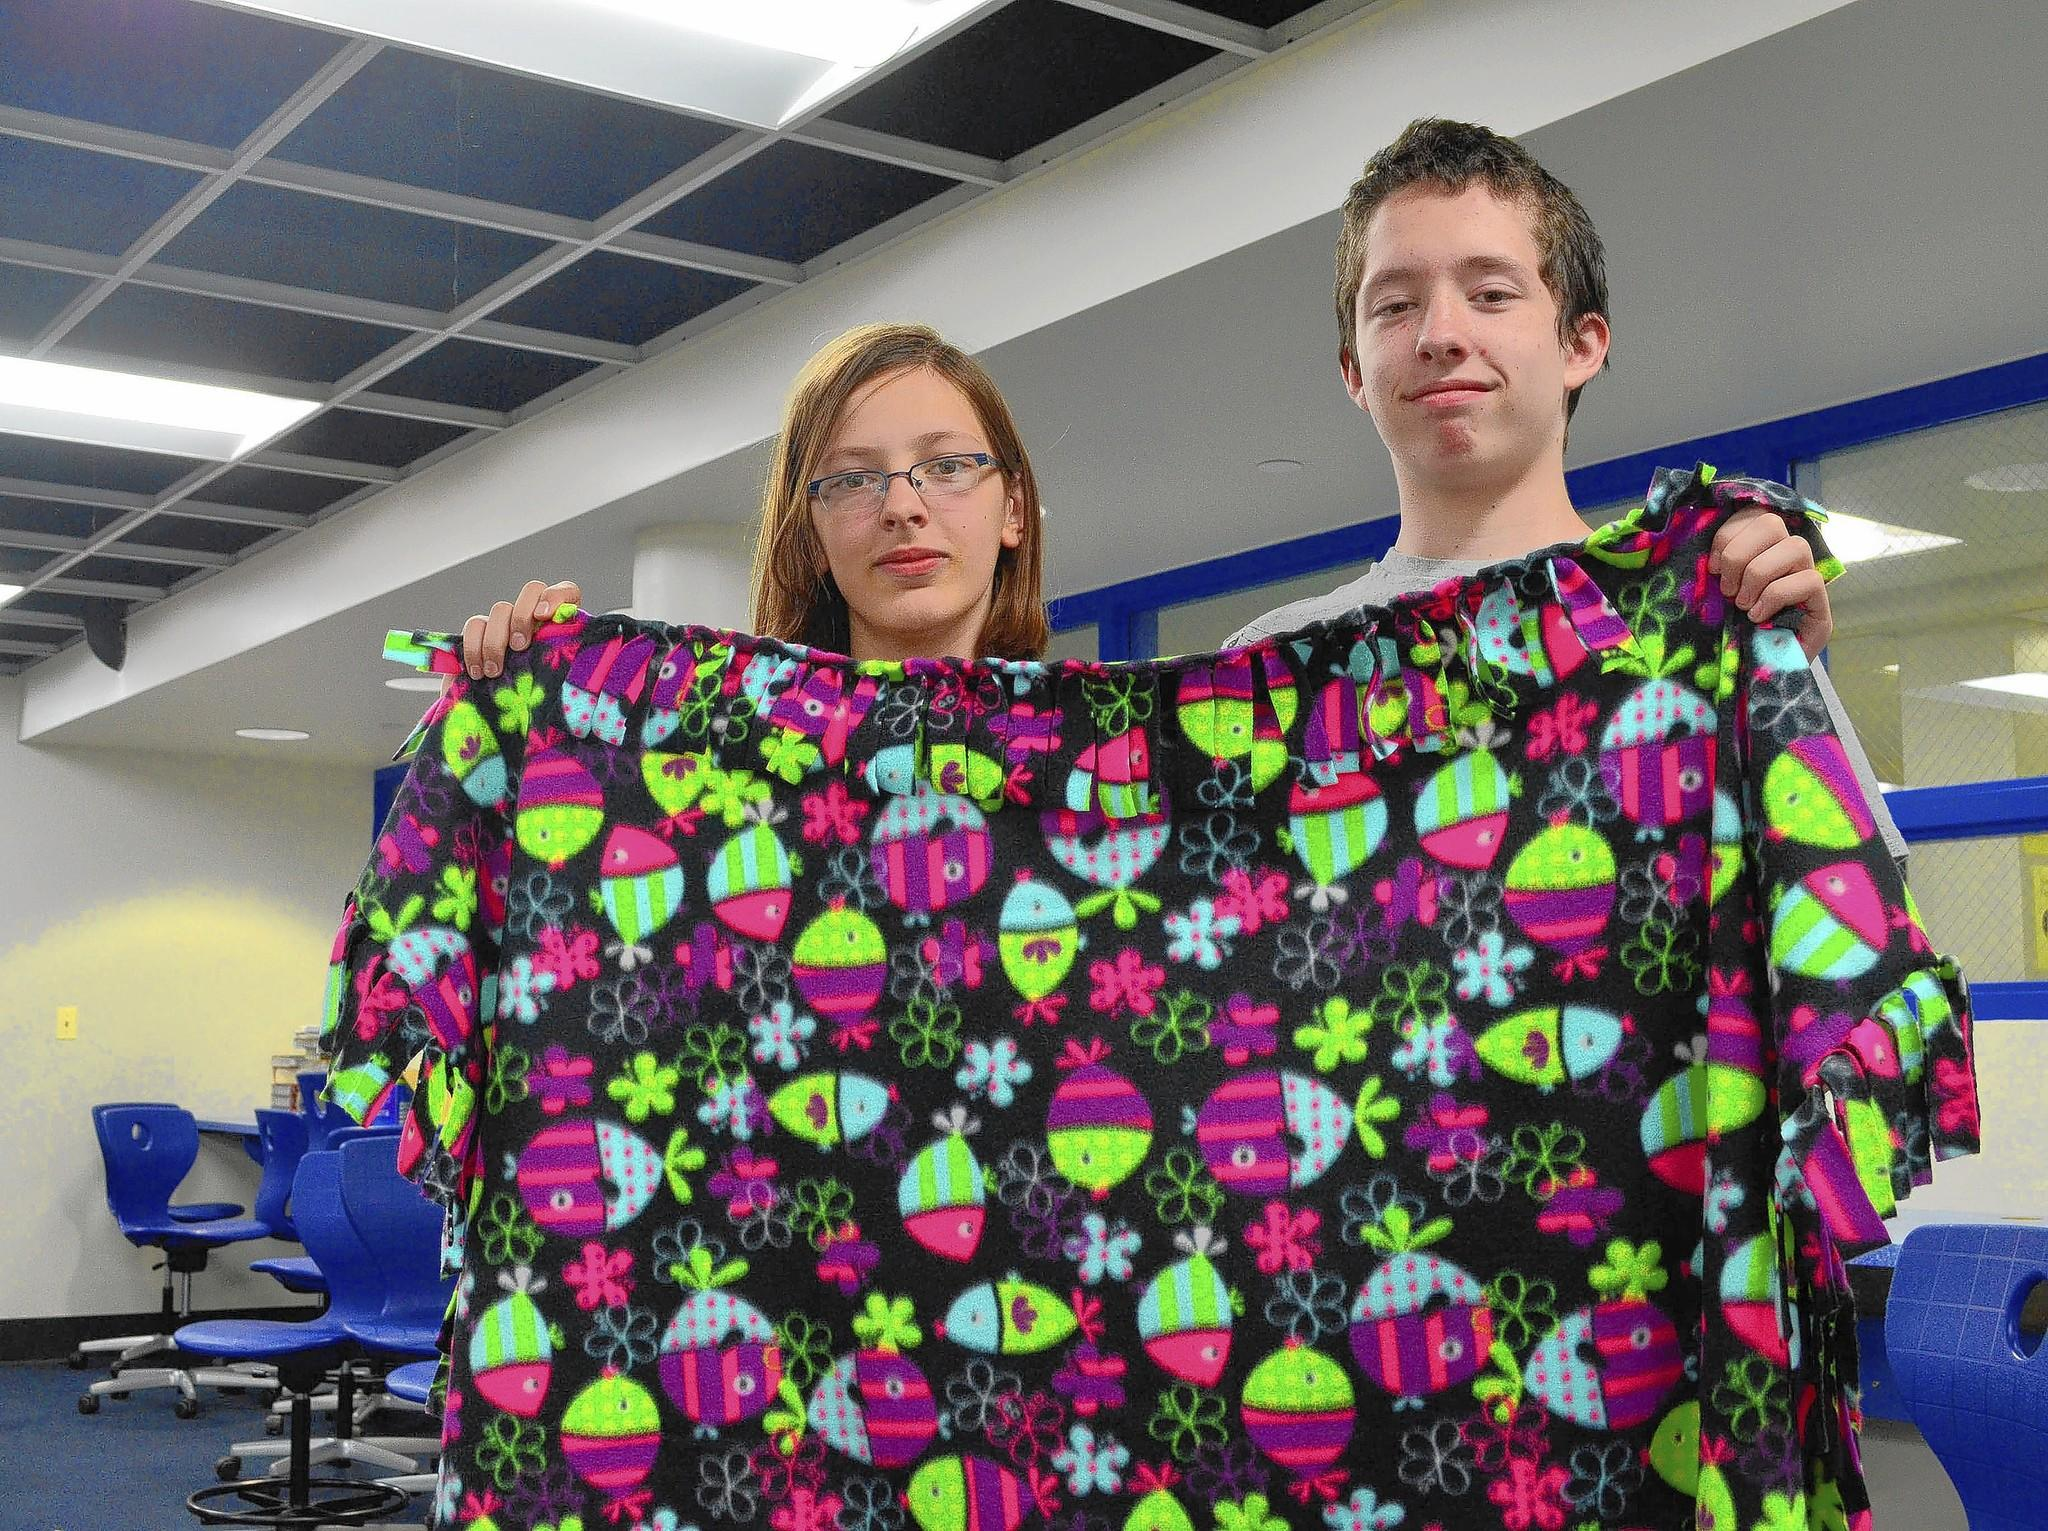 Veronica Kleinschmidt and Nick Heidrich, both 7th-graders, show a completed blanket.